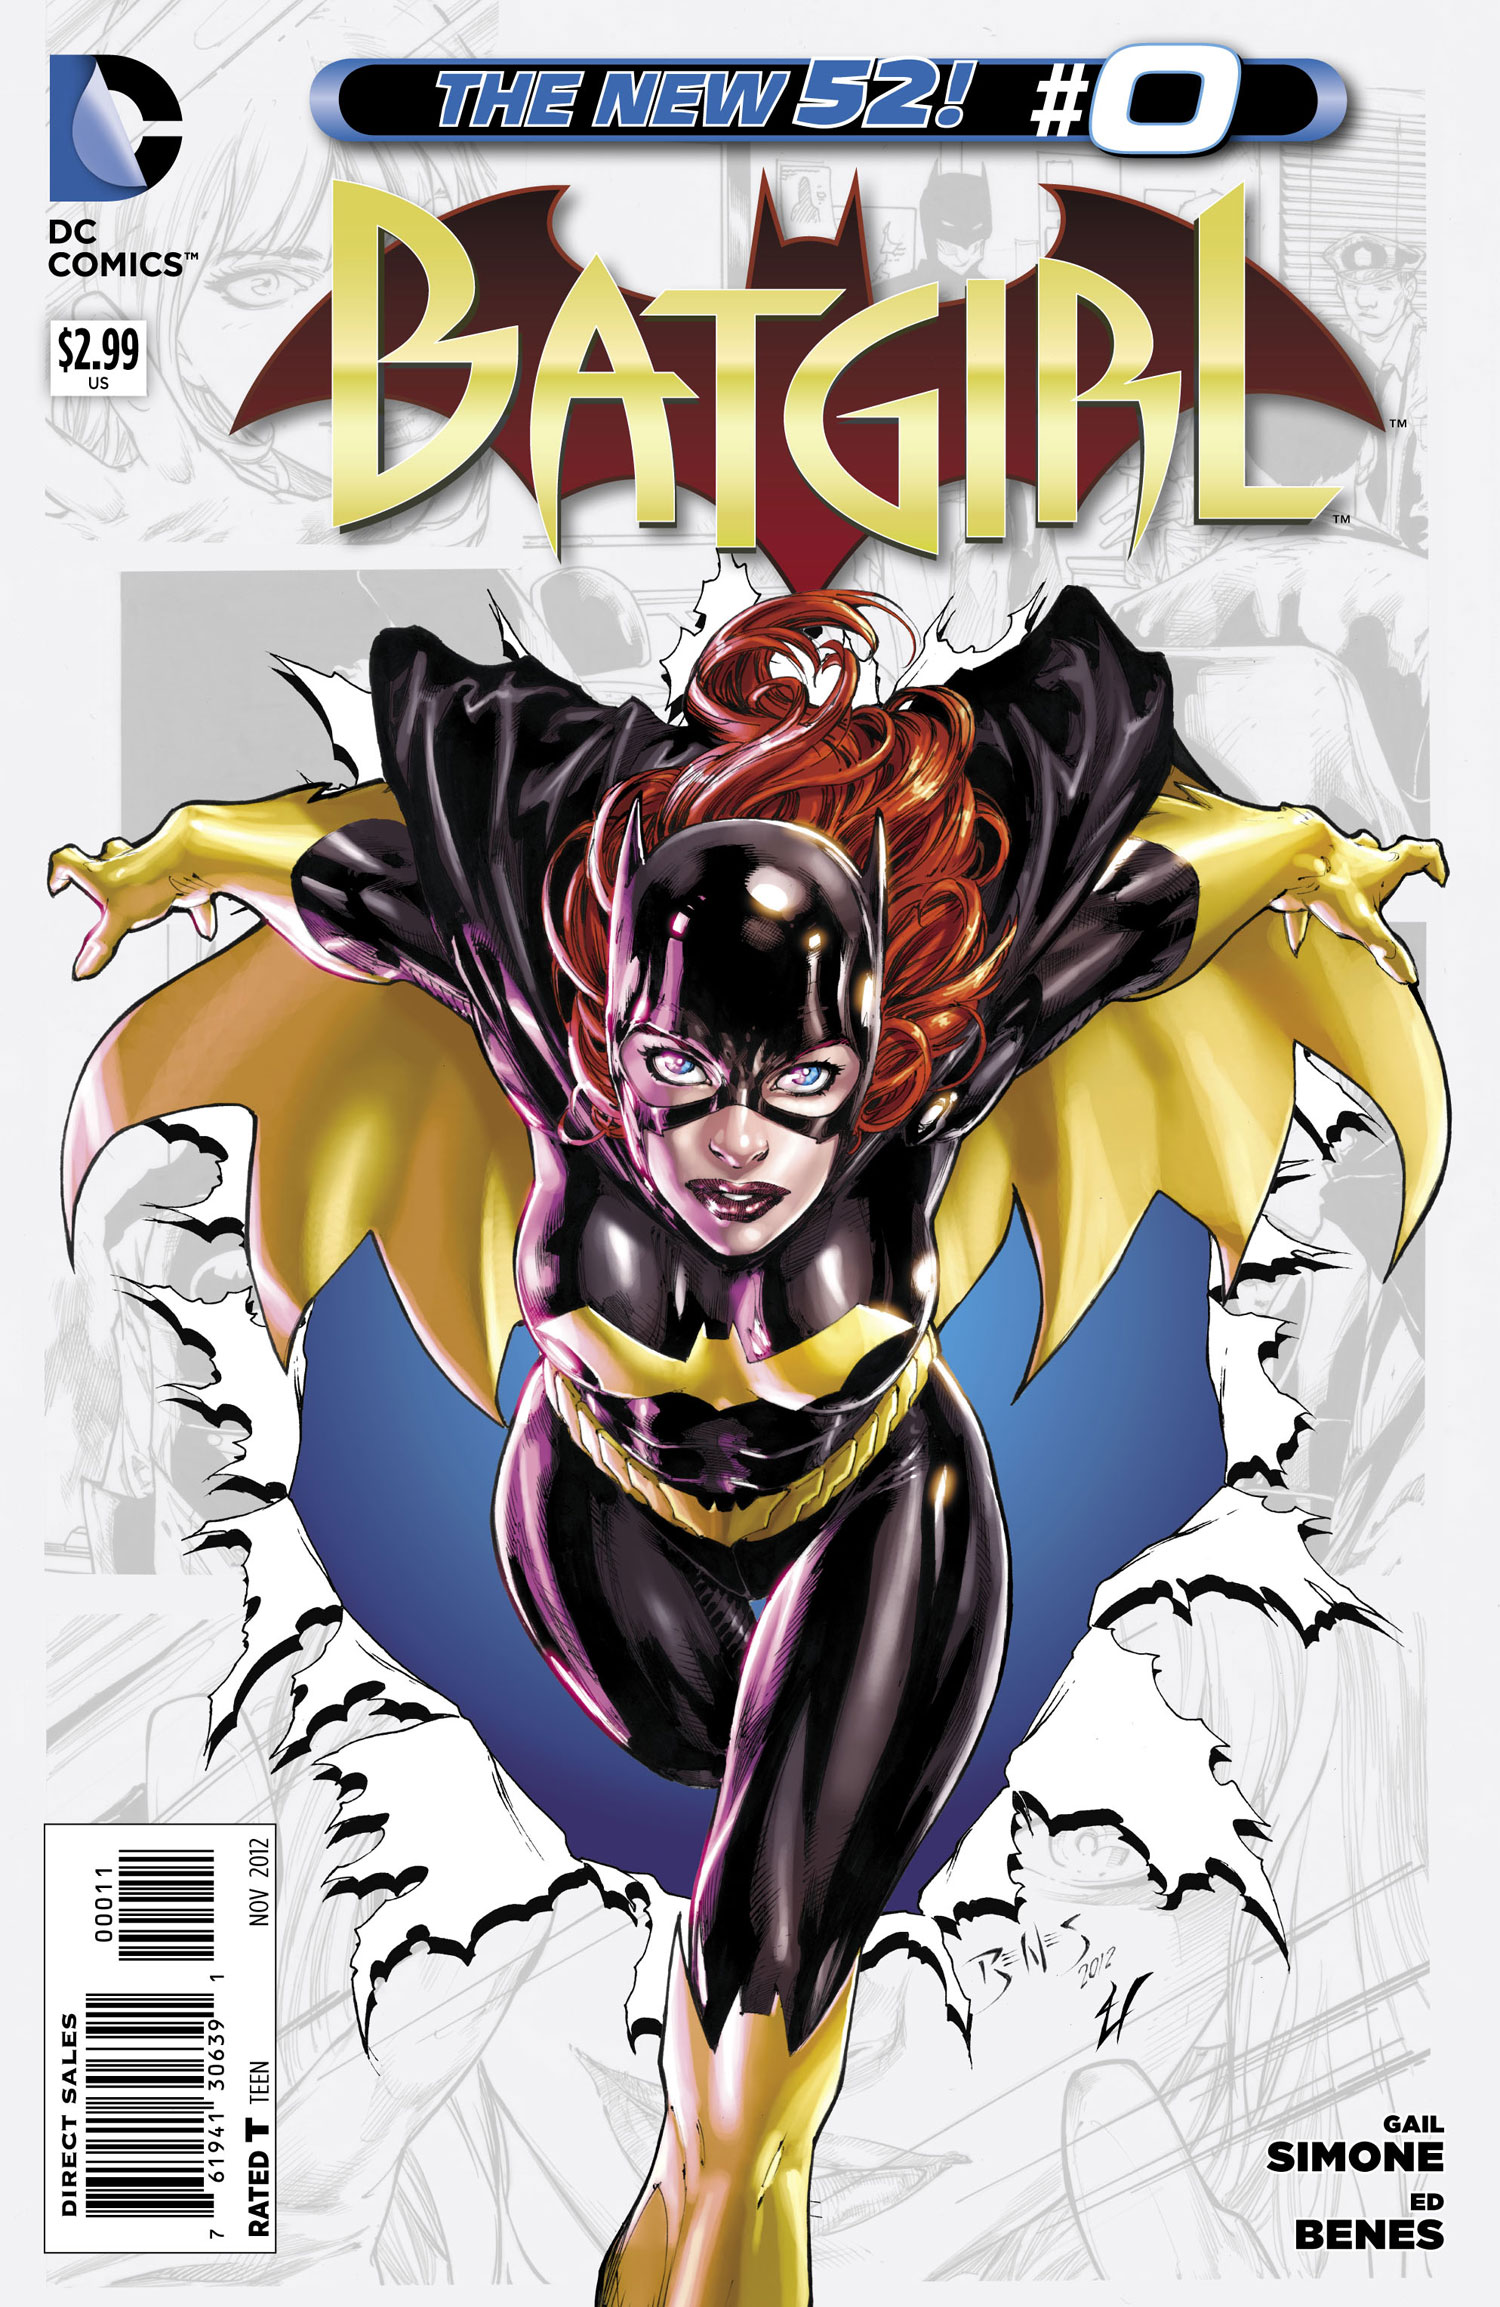 Batgirl Issue 0 First Issue Collectors Item: Batgirl #0 (2012)